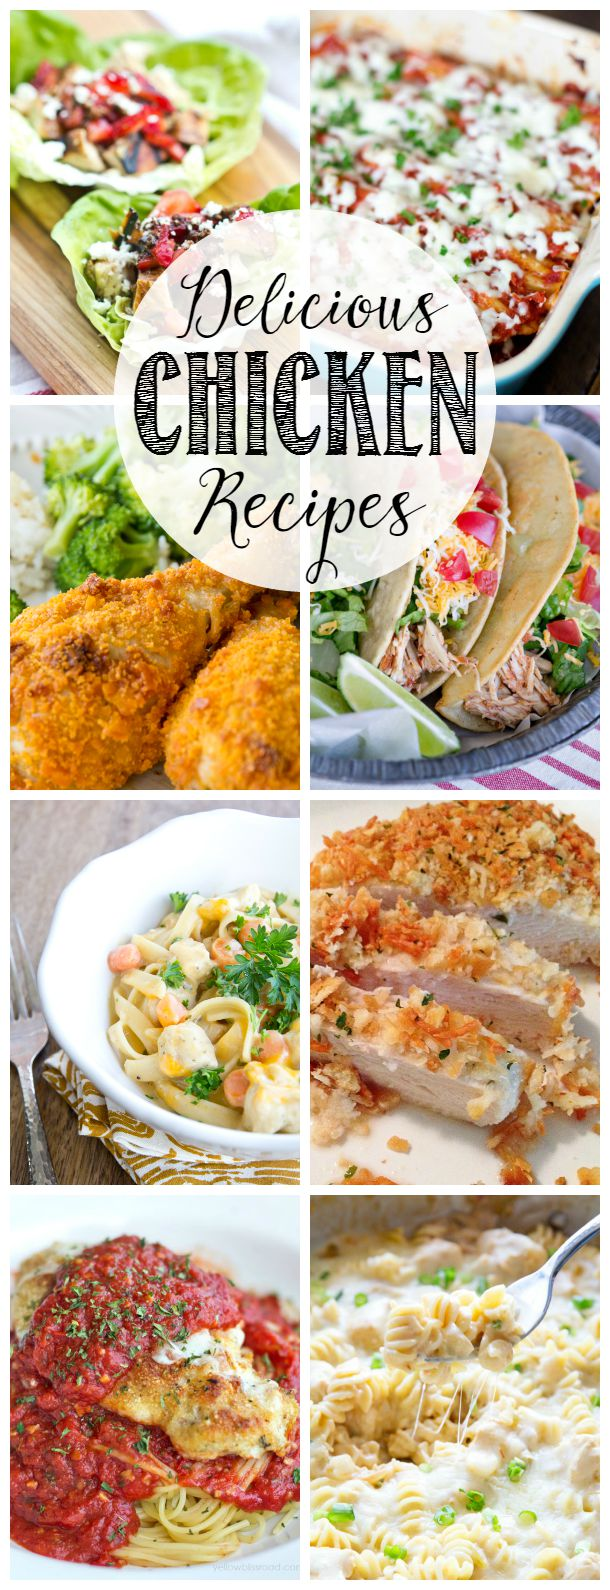 Delicious collection of chicken recipes. Perfect for those quick and easy weeknight meals.